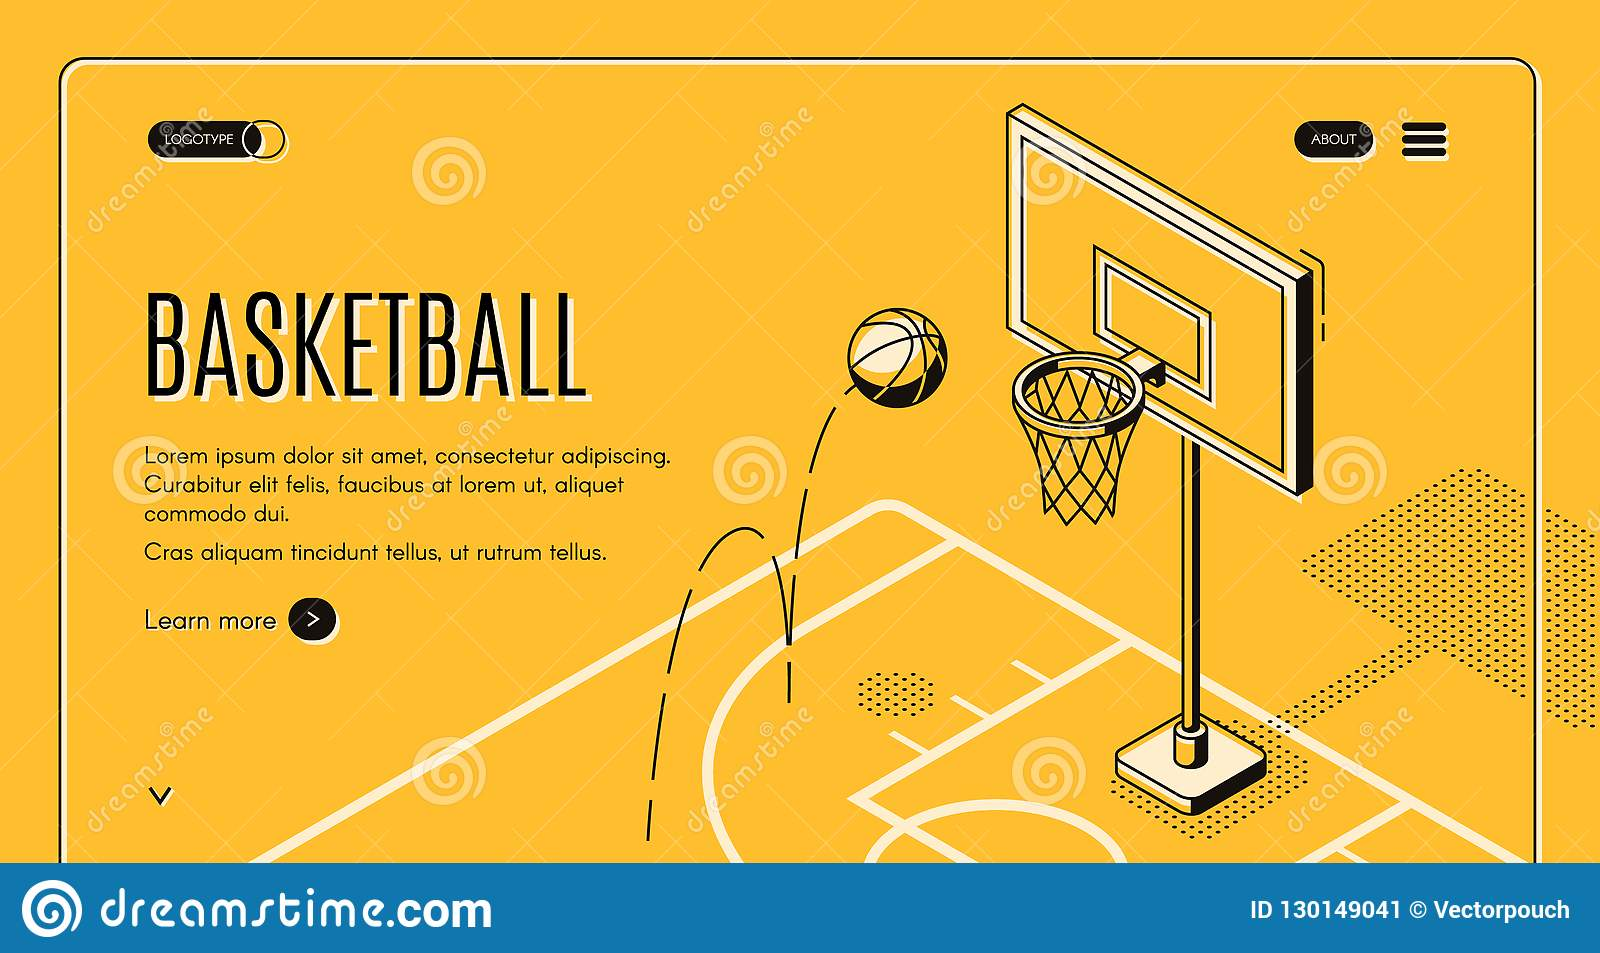 Commercial basketball court vector landing page